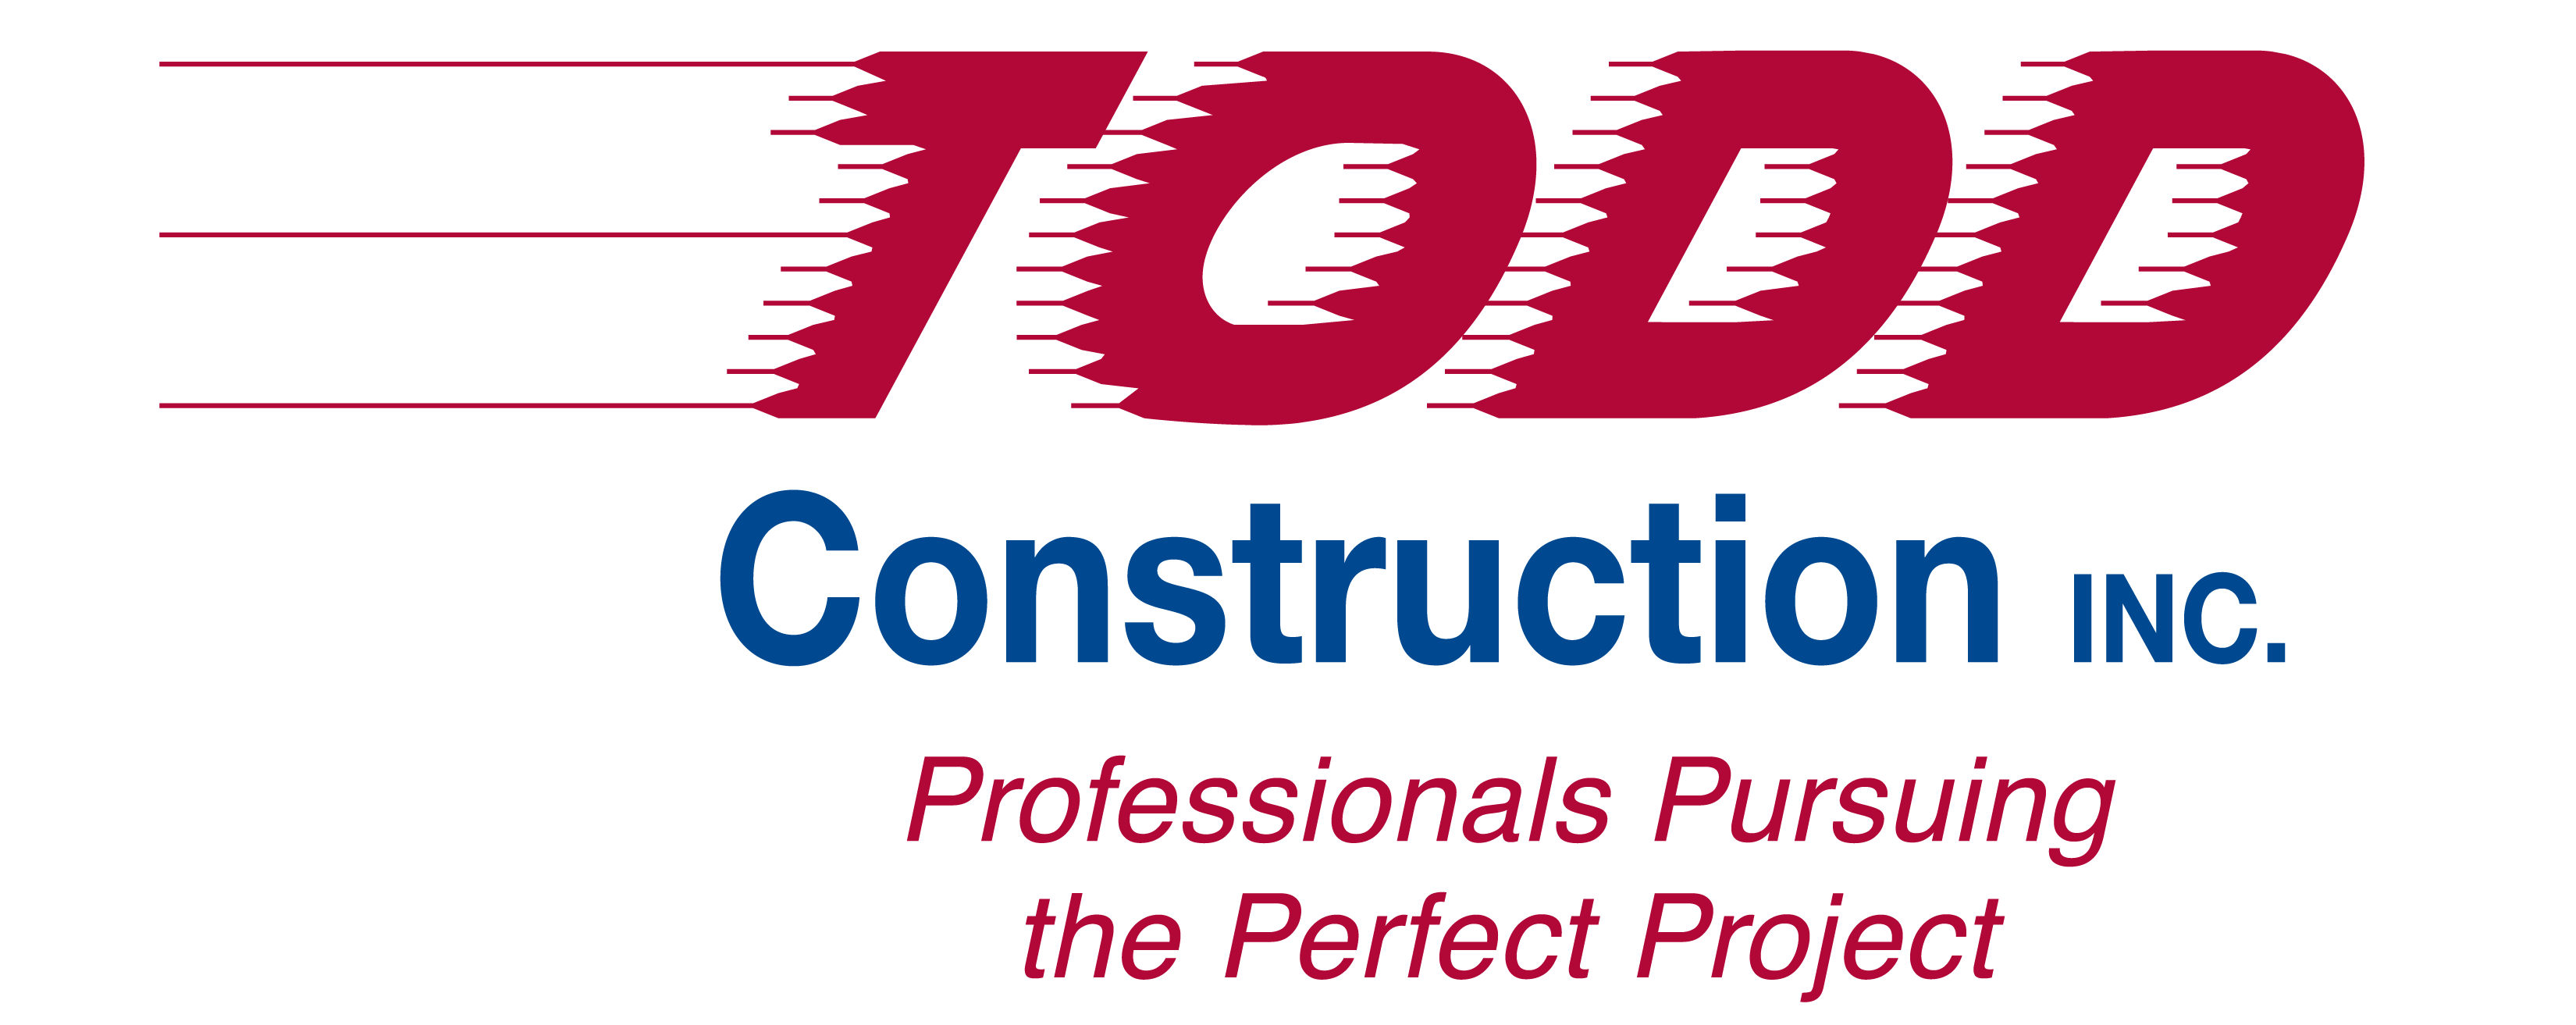 Contractor Firm Logo